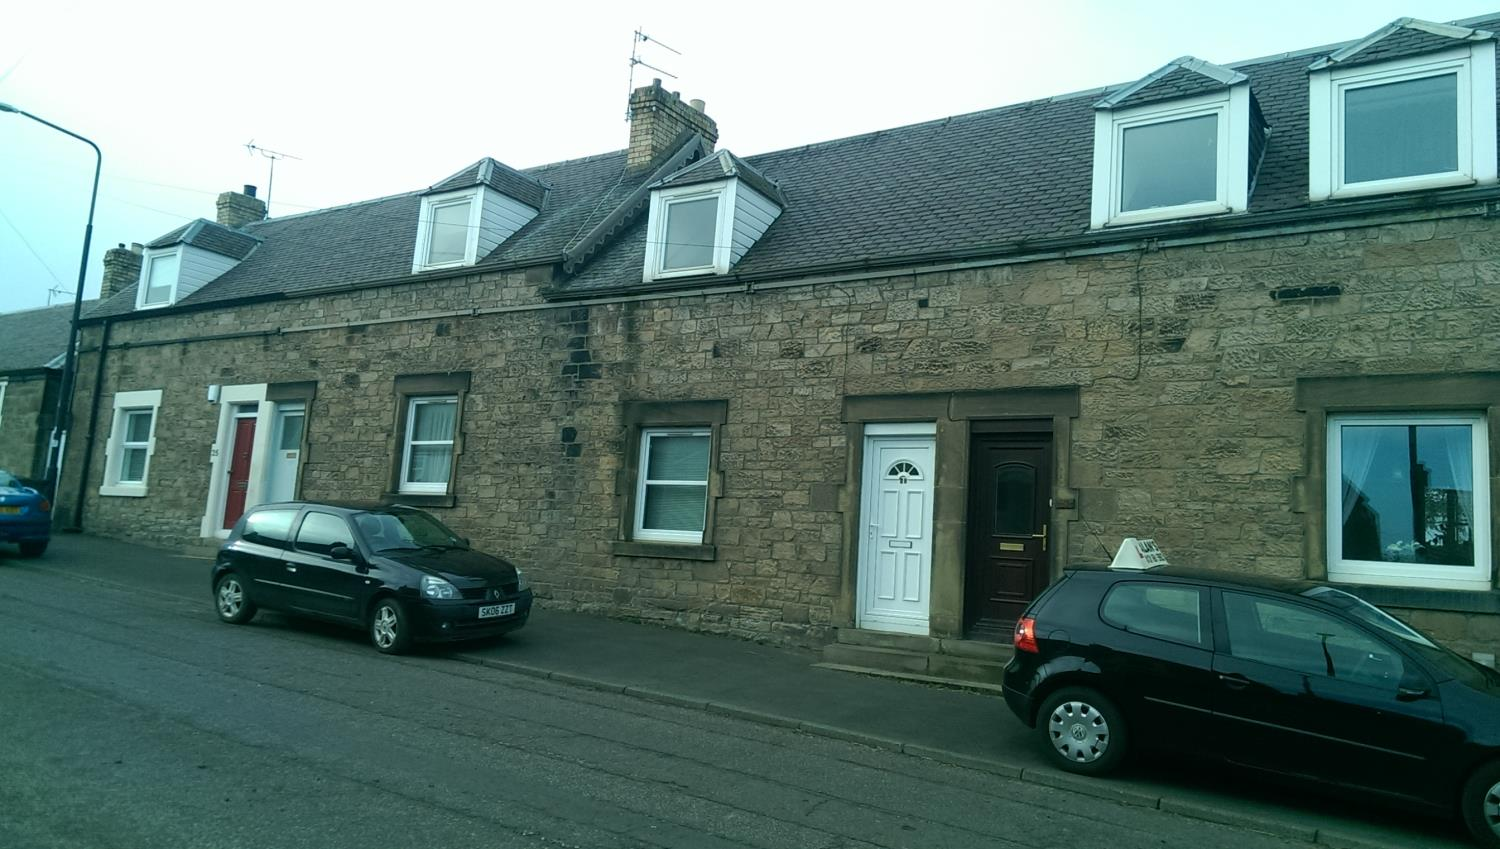 View property for rent Millerhill, Midlothian